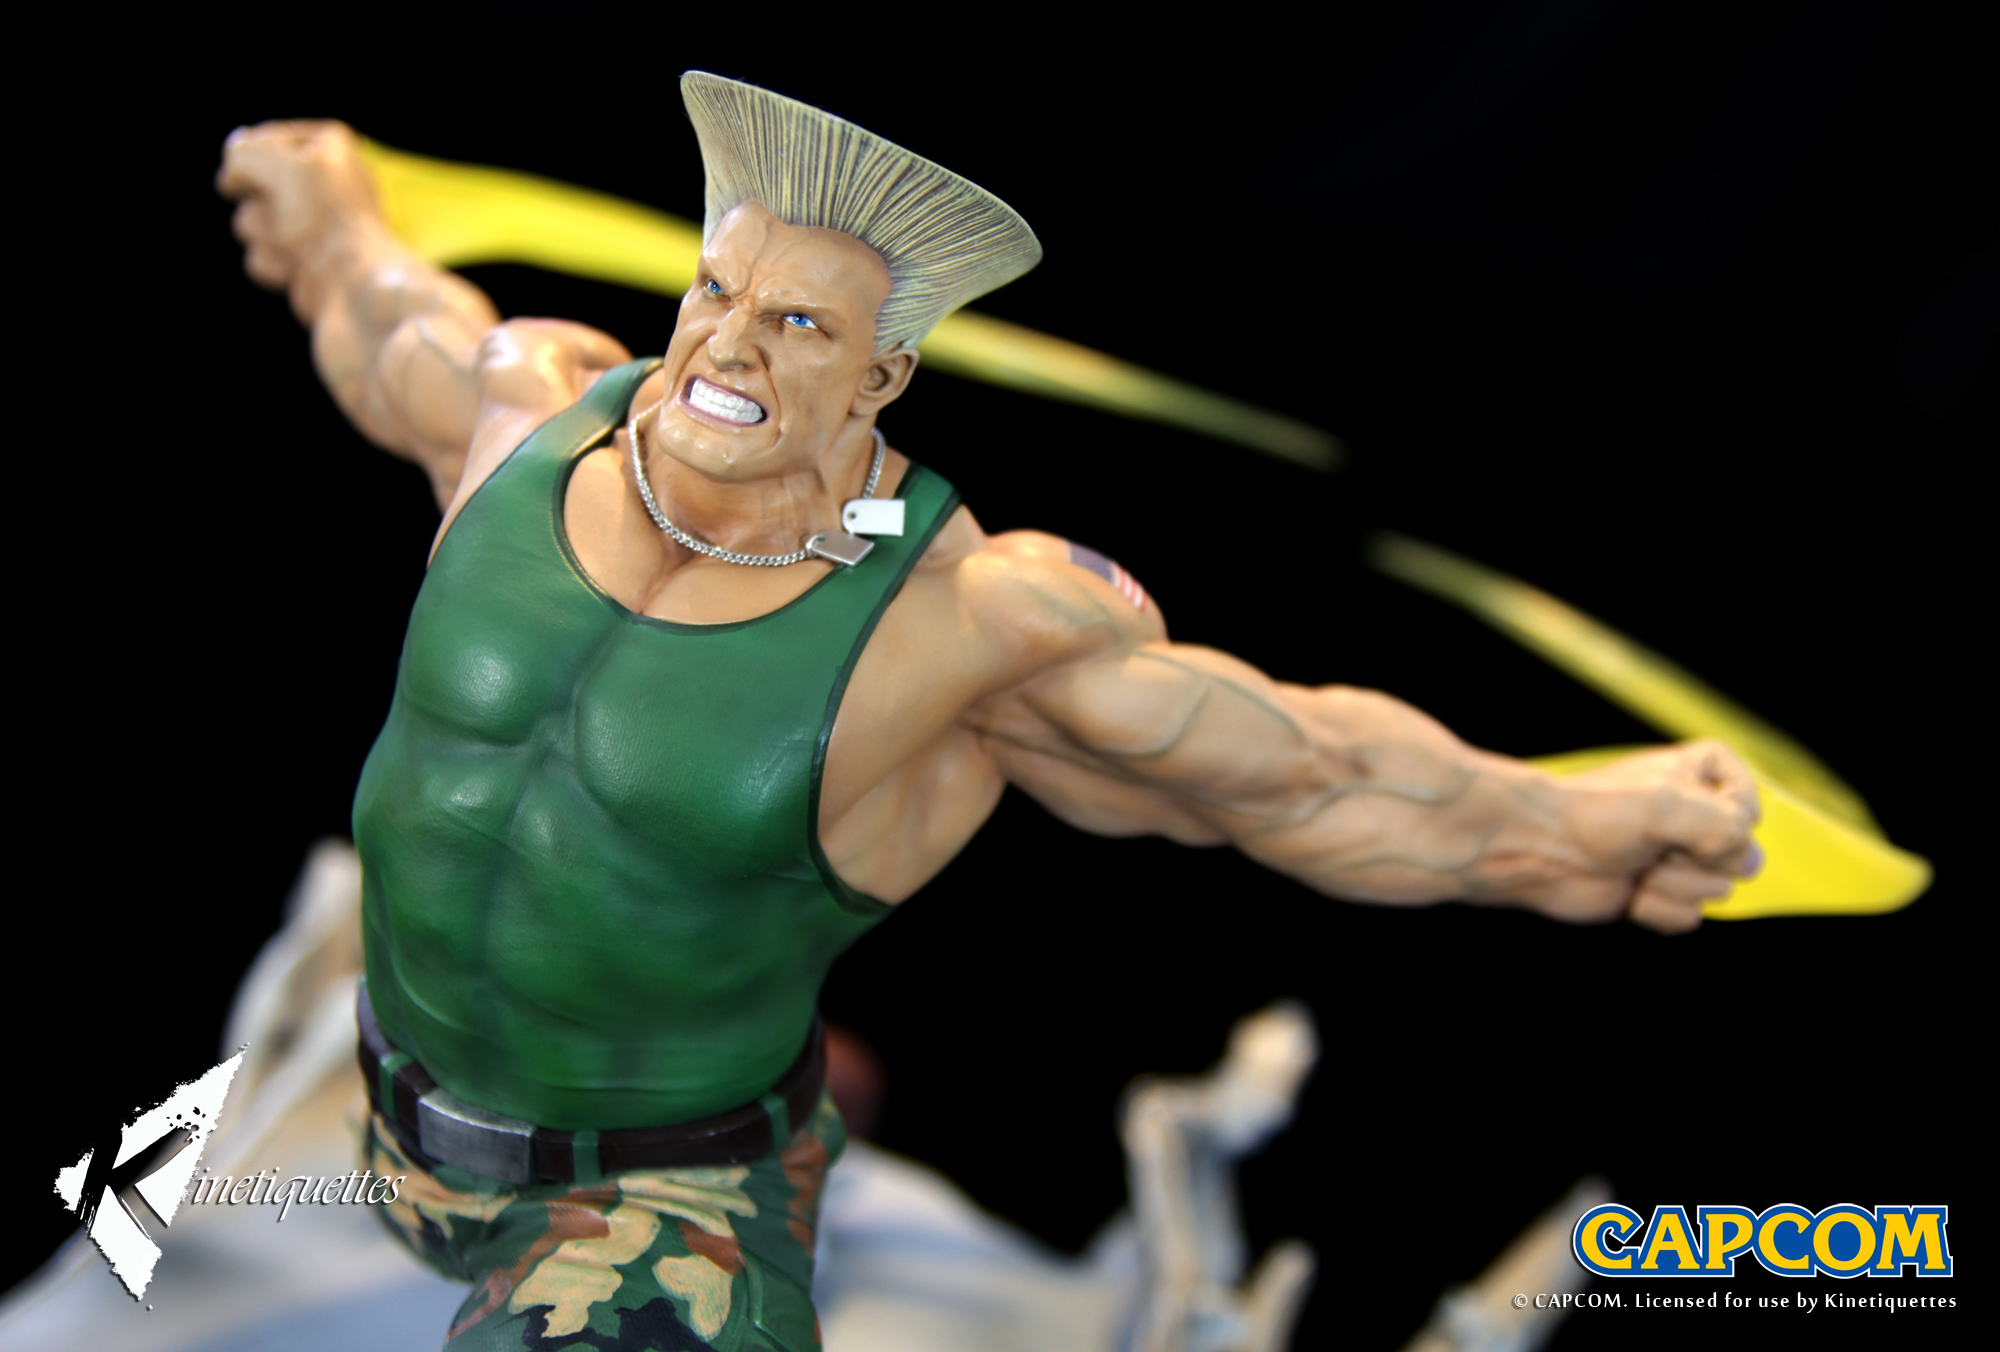 War Heroes Guile ガイル 16 Scale Diorama Kinetiquettes